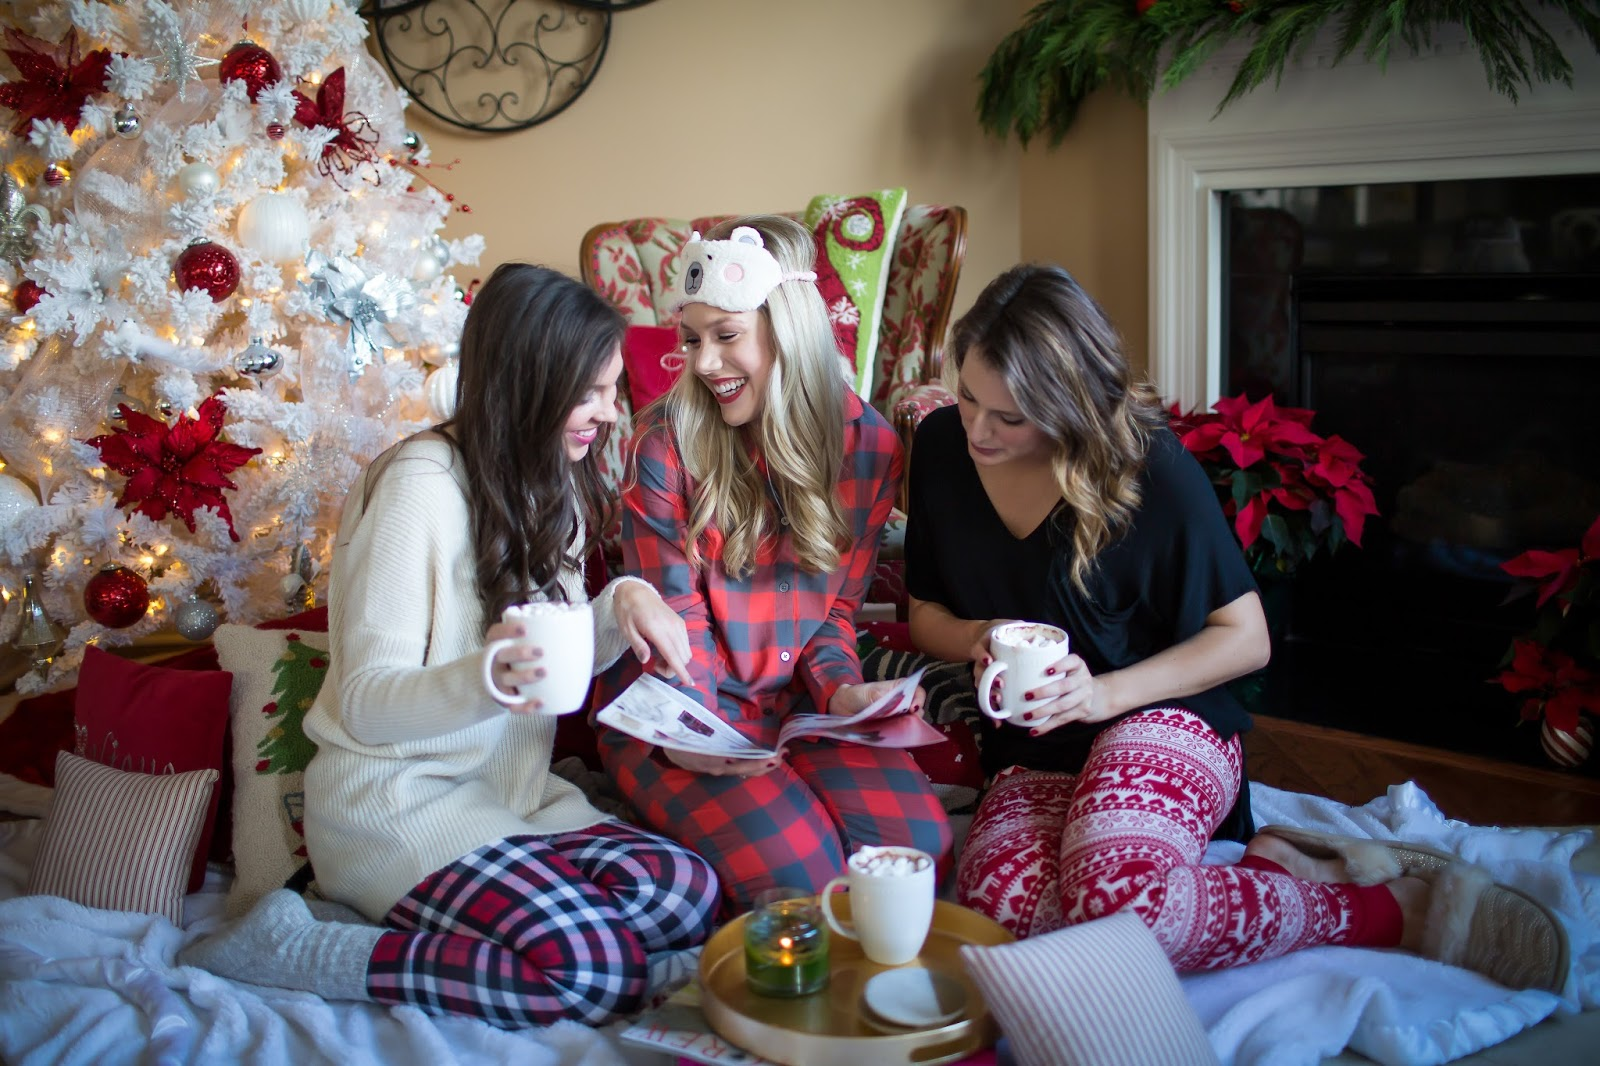 Christmas party photography, brittney rowland photography, christmas jammies, holiday party ideas, christmas party ideas, cozy christmas ideas, winter style, fashion bloggers, north carolina bloggers, nordstrom pajamas, nordstrom christmas pj's, christmas decor, plaid pajamas, oversized sweater, hot chocolate photography